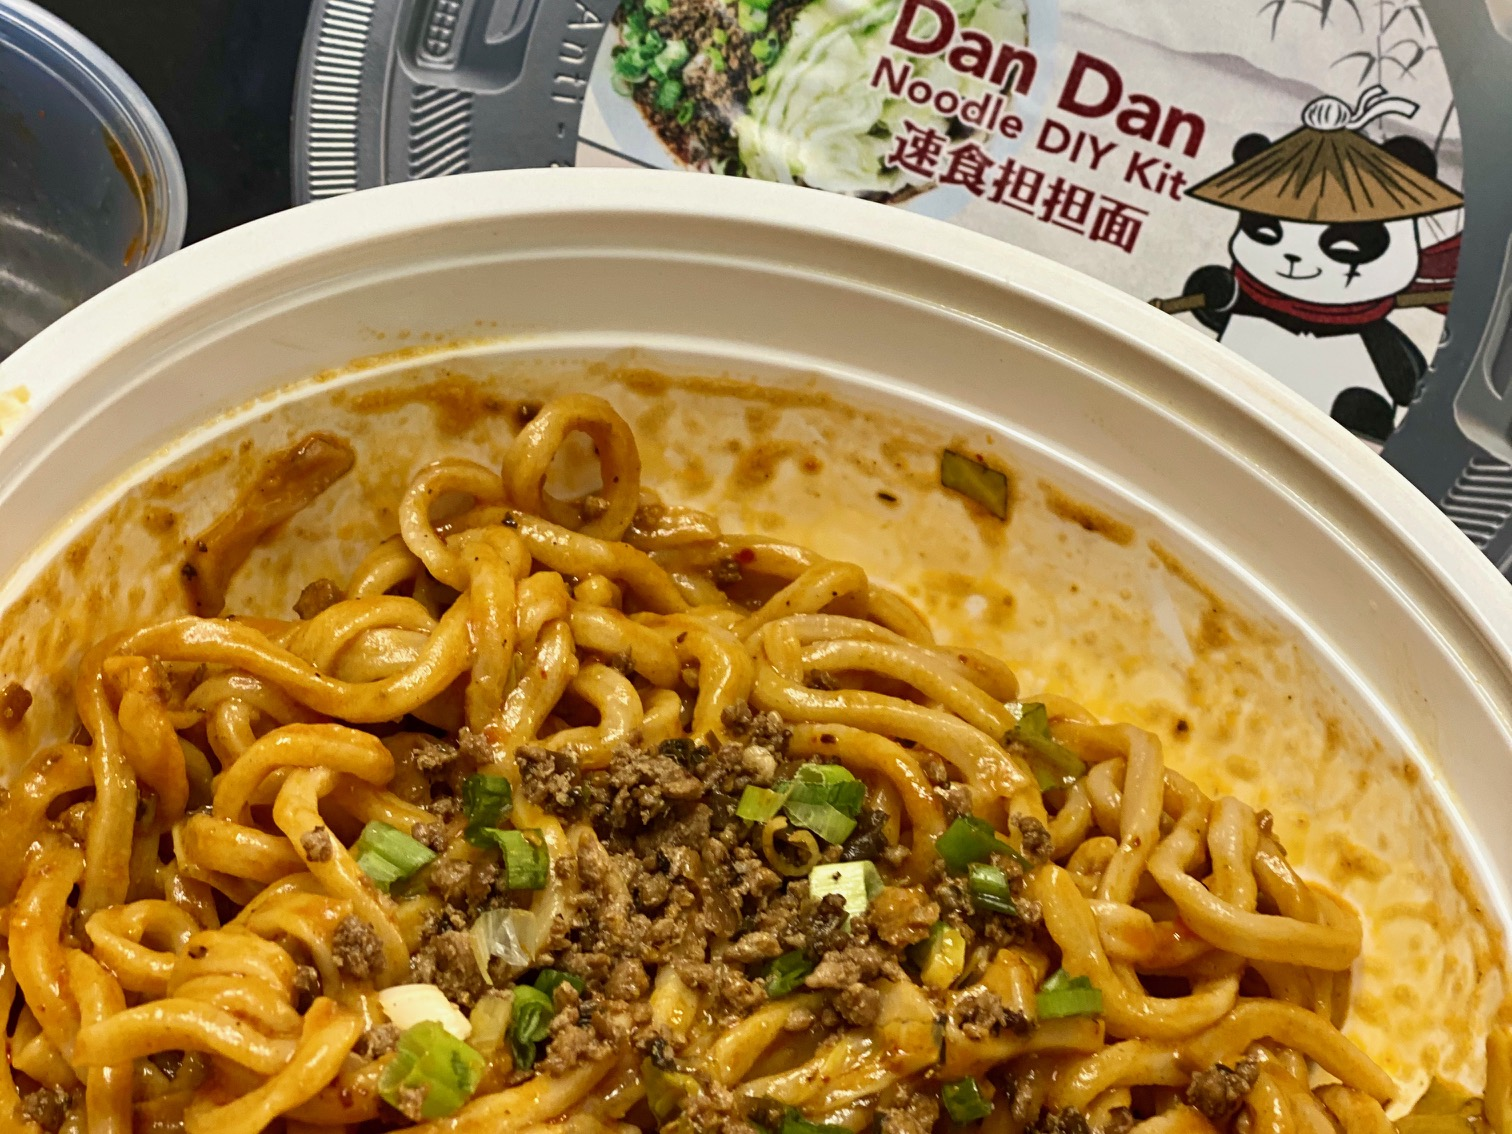 DIY Dan Dan Noodles at Mala Sichuan